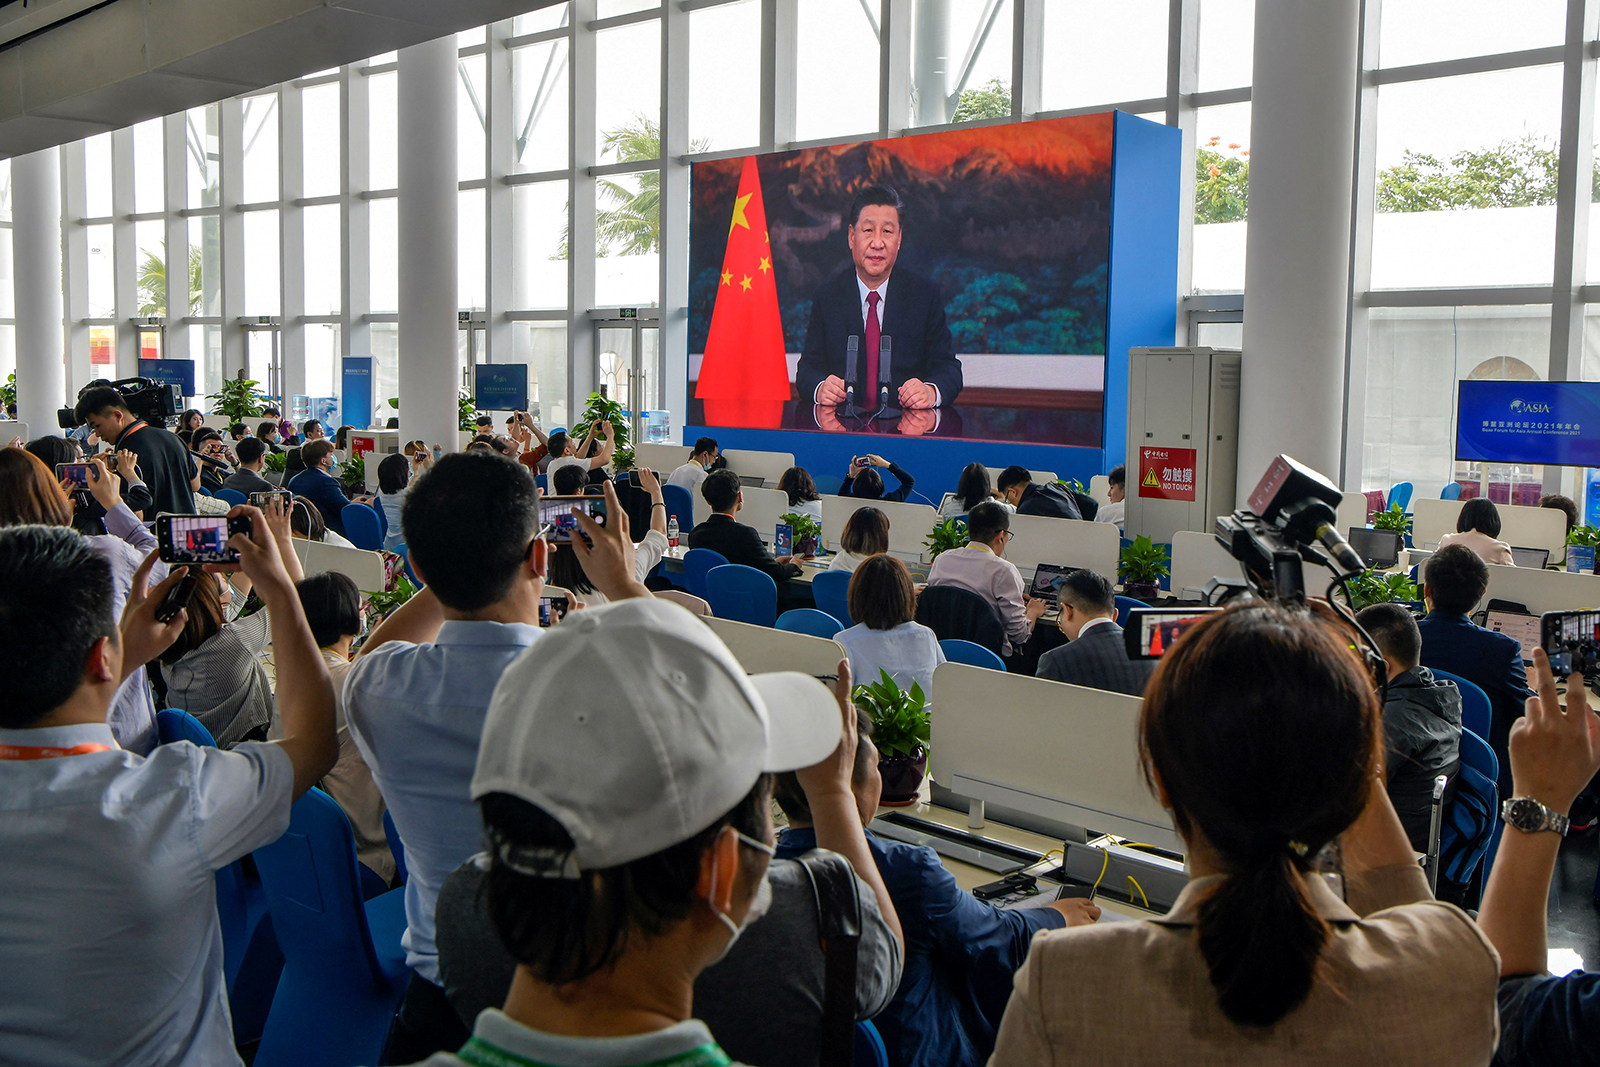 Xi Jinping says 'bossing others around' won't work as US ups pressure on China